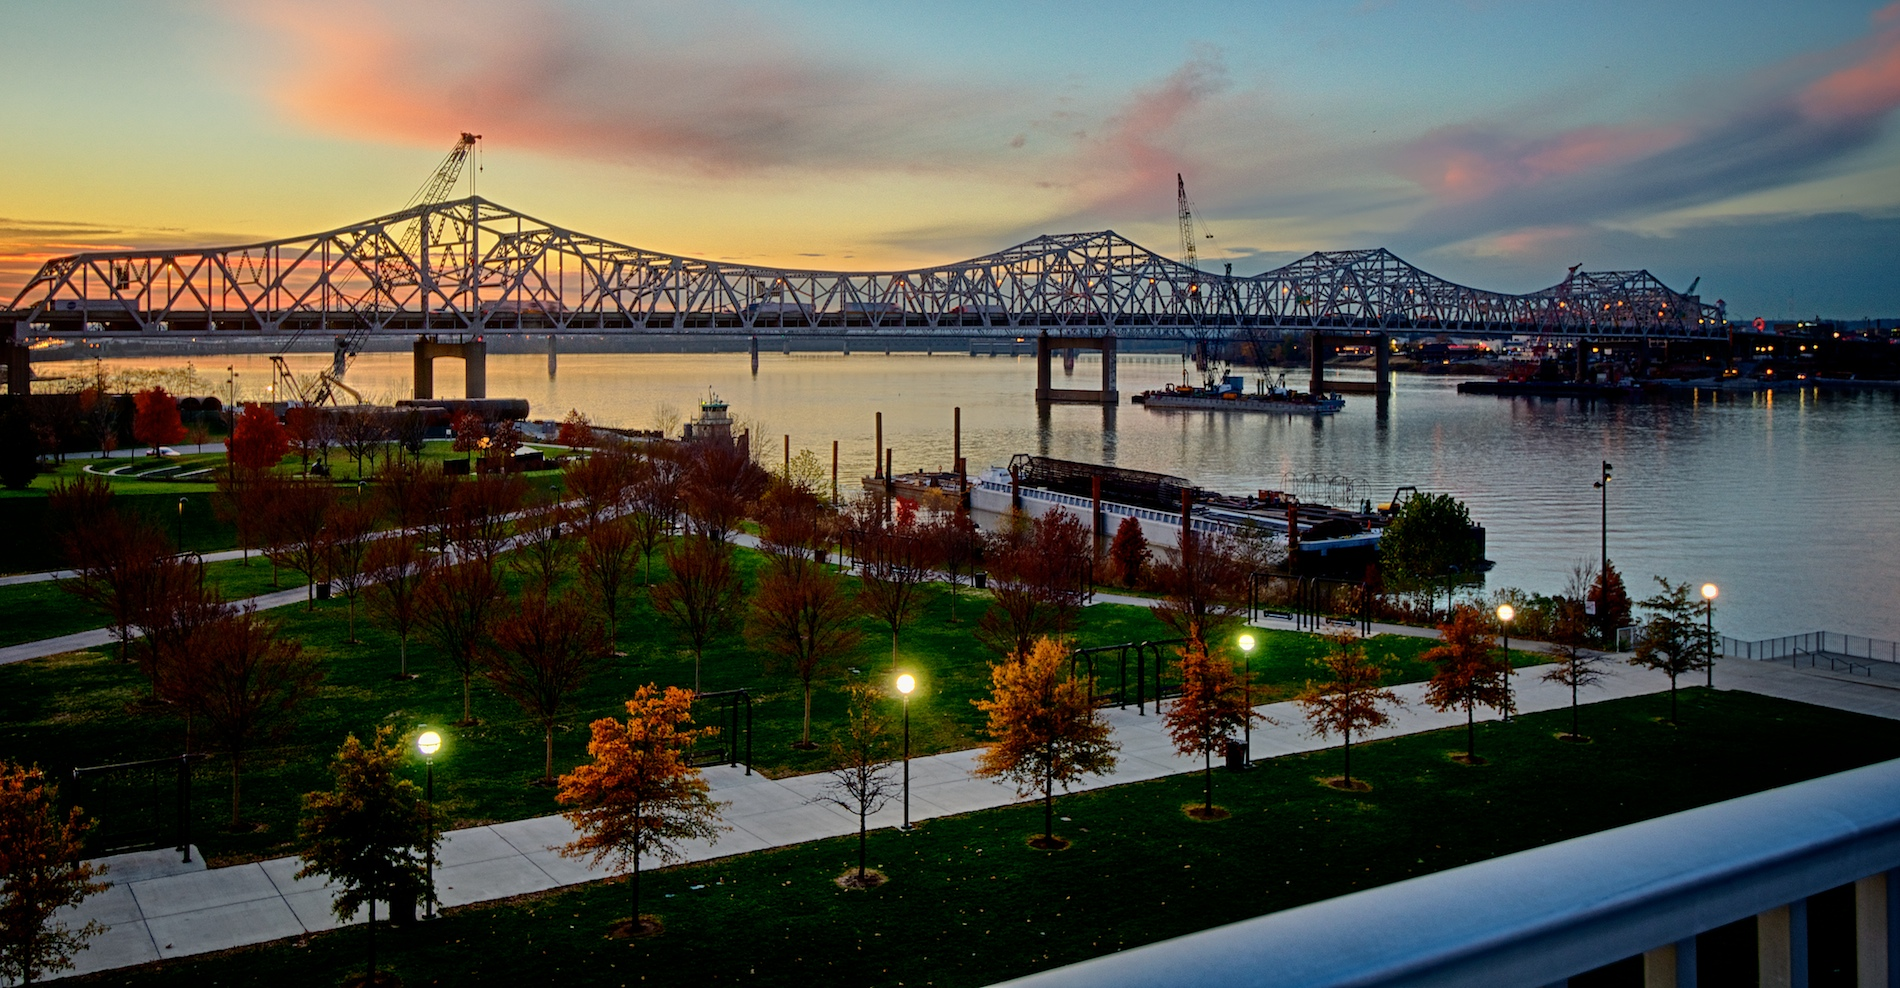 Ohio River Bridges Project at Sunset